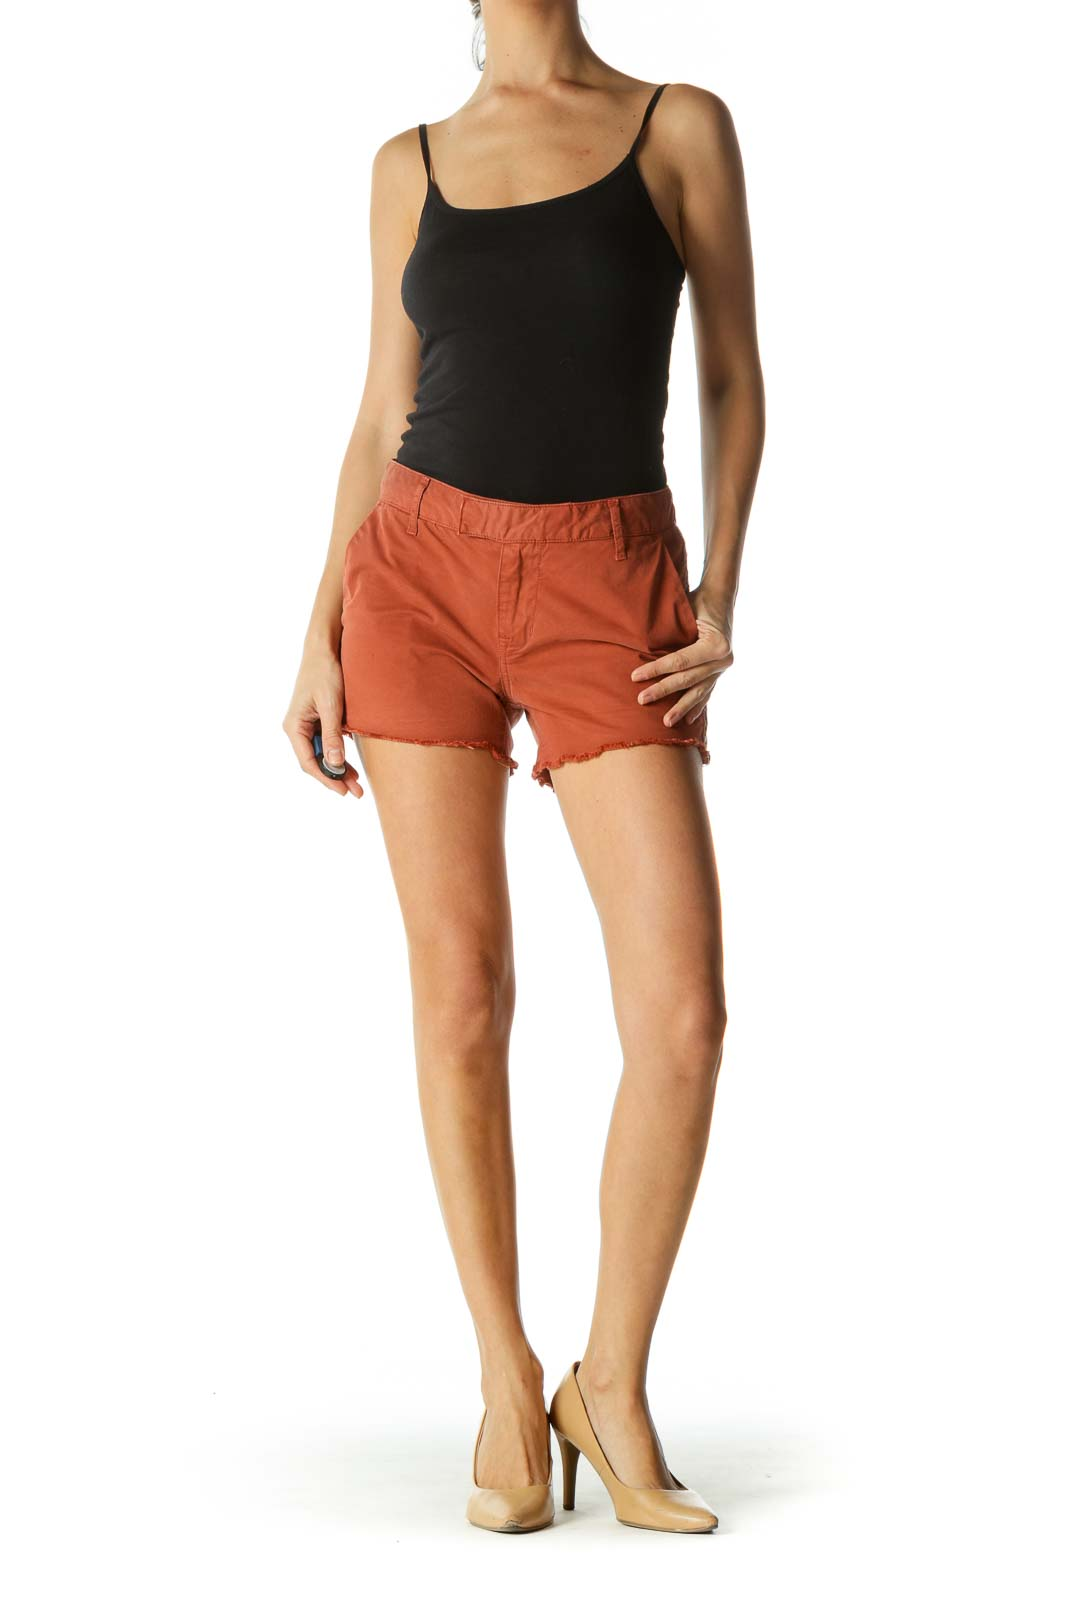 Rusty Red Boho Patterned Shorts